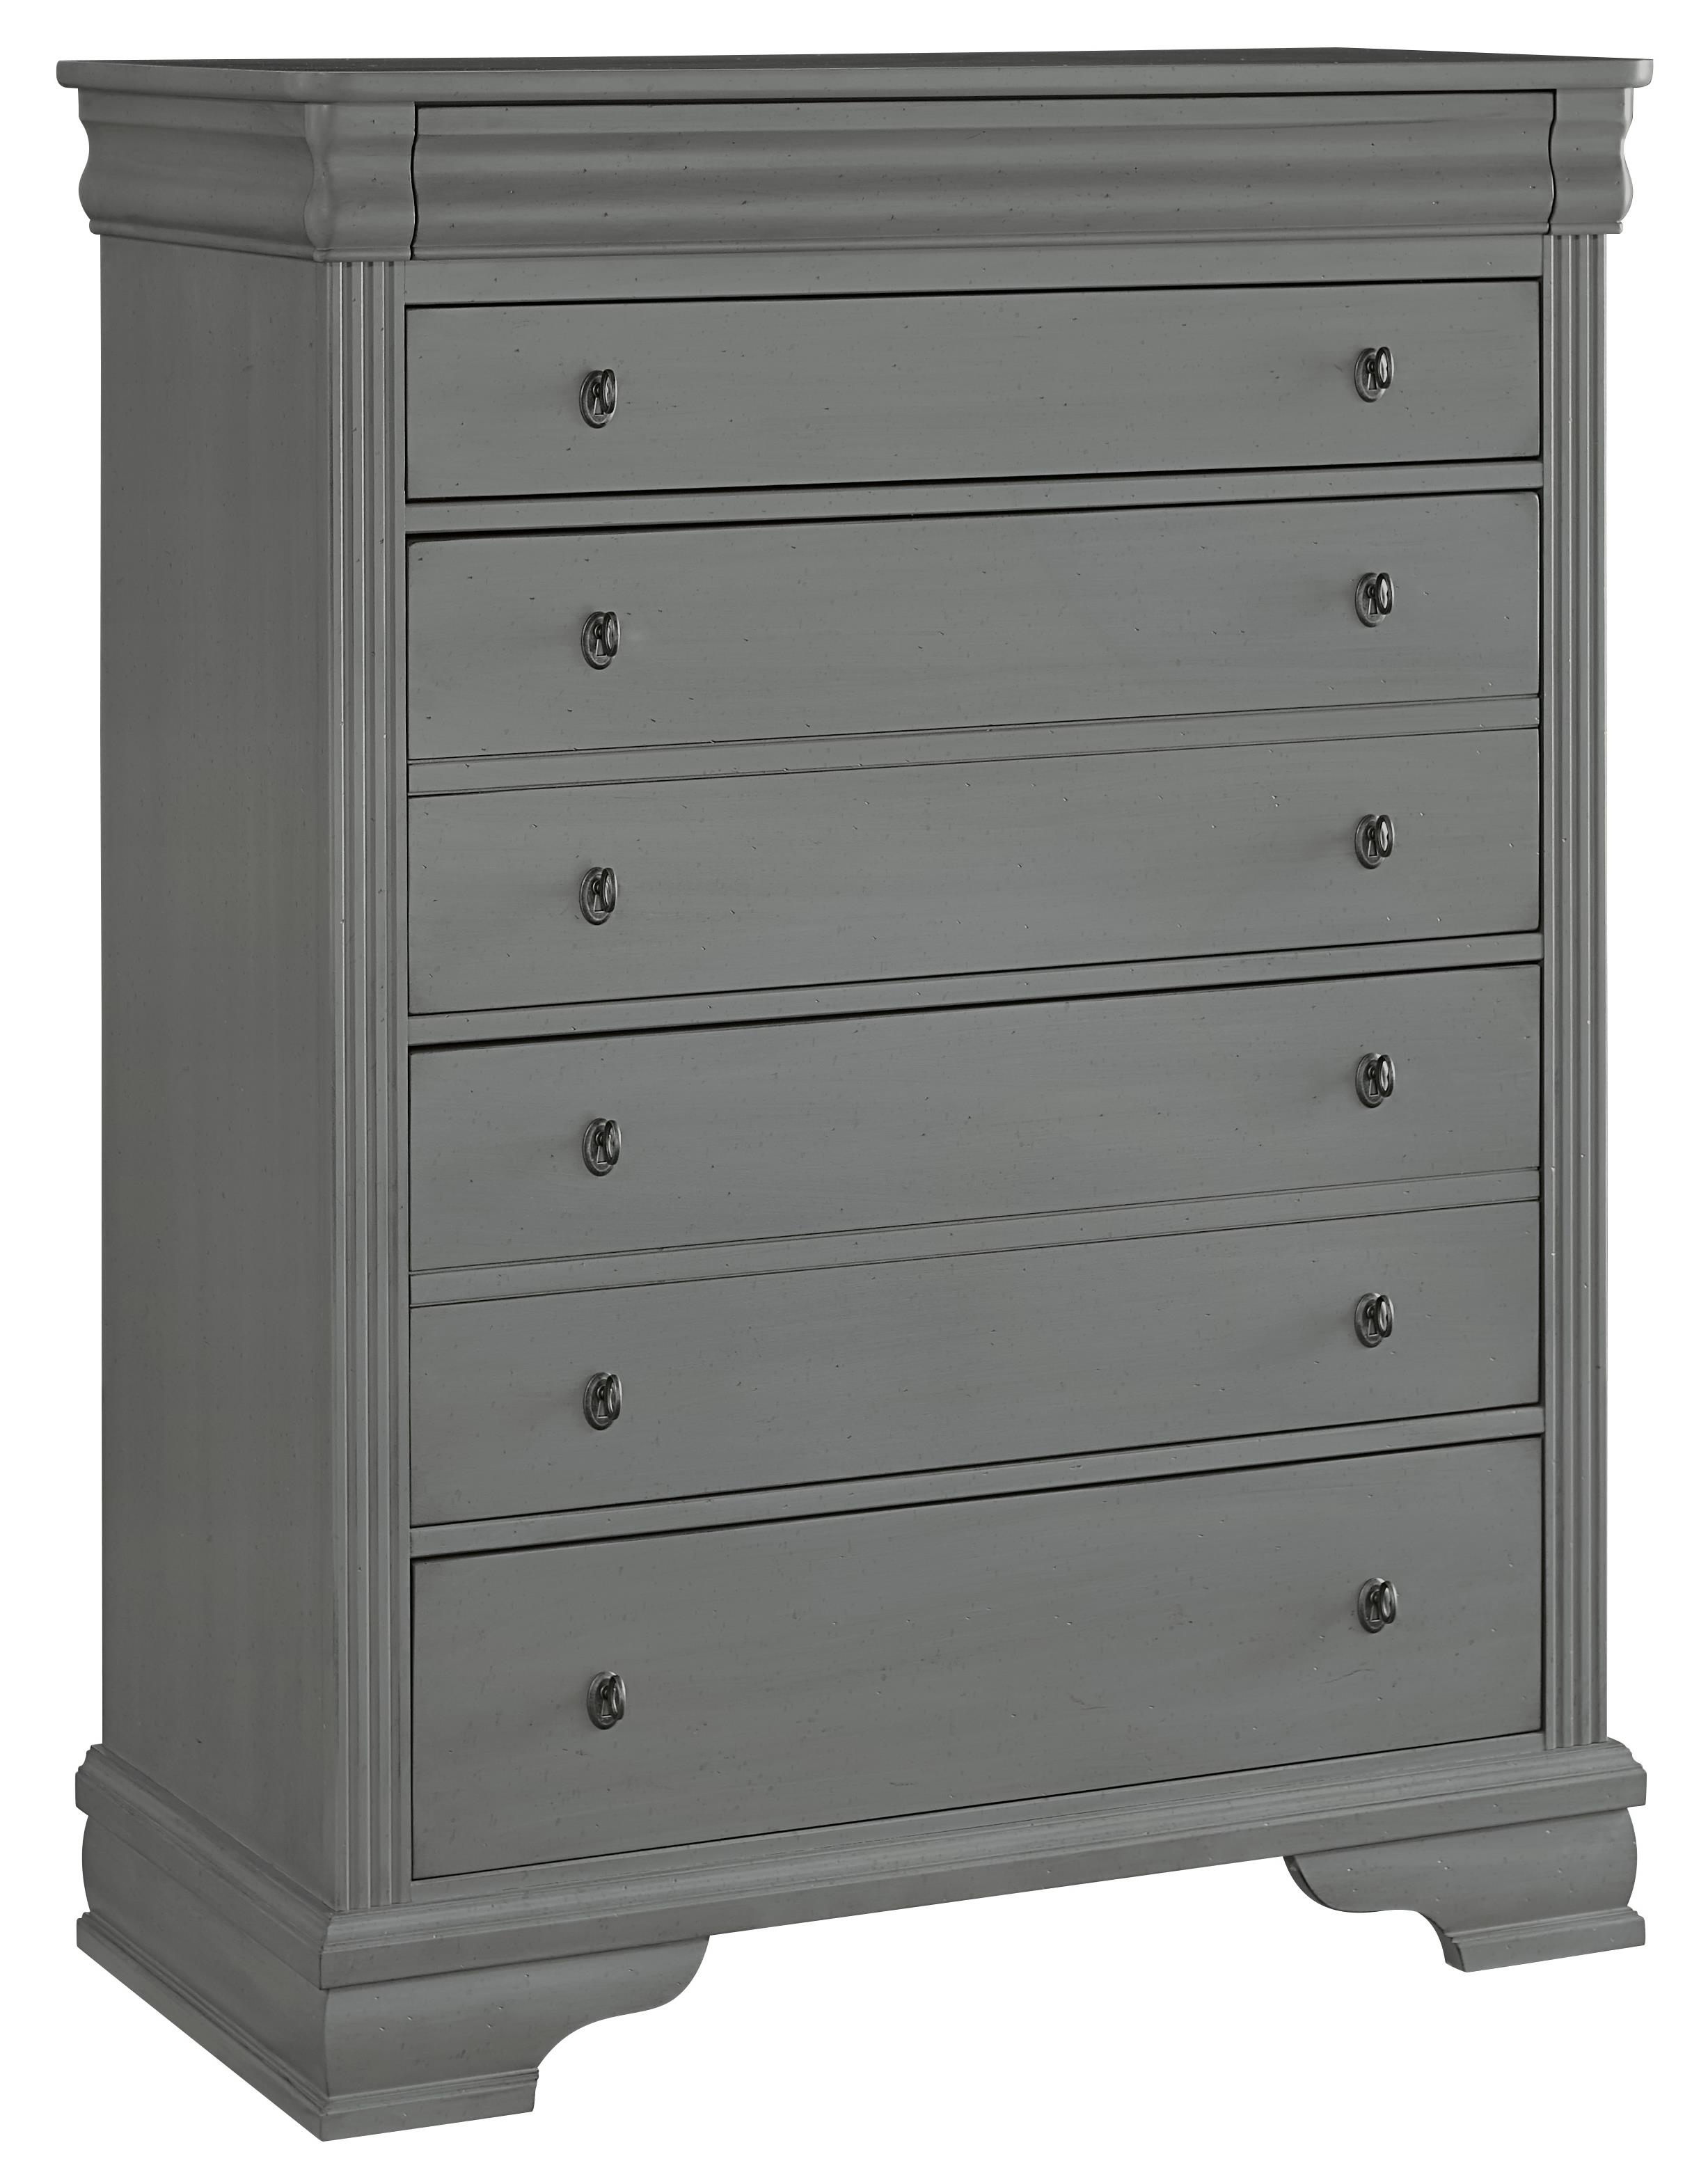 Vaughan Bassett French Market Storage Chest - 5 Drawers - Item Number: 381-115